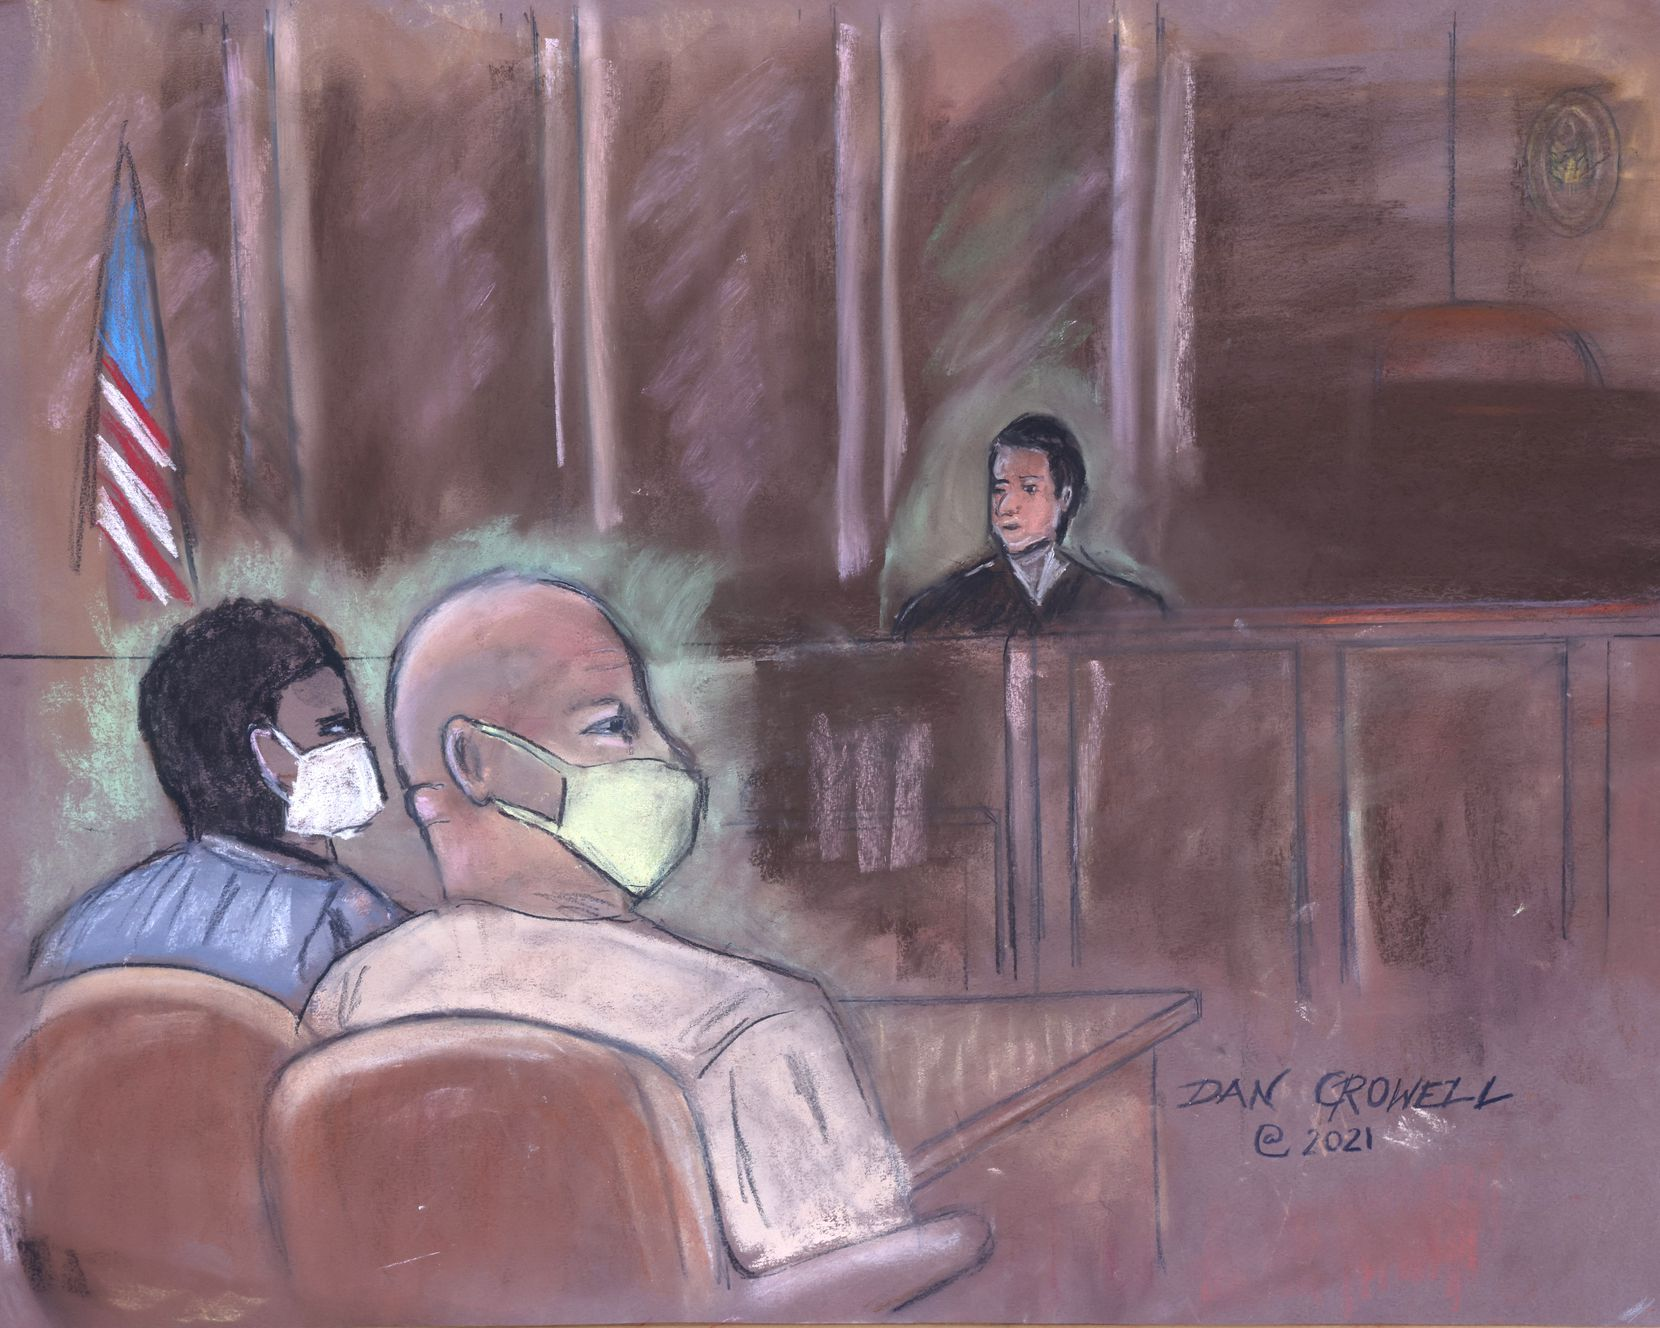 A courtroom sketch by artist Dan Crowell during detention hearing of Larry Brock at the Eldon B Mahon Courthouse on Thursday, Jan. 14, 2020. Brock, a retired Air Force lieutenant colonel, was arrested for his alleged role during U.S. Capitol riot on Jan. 6.